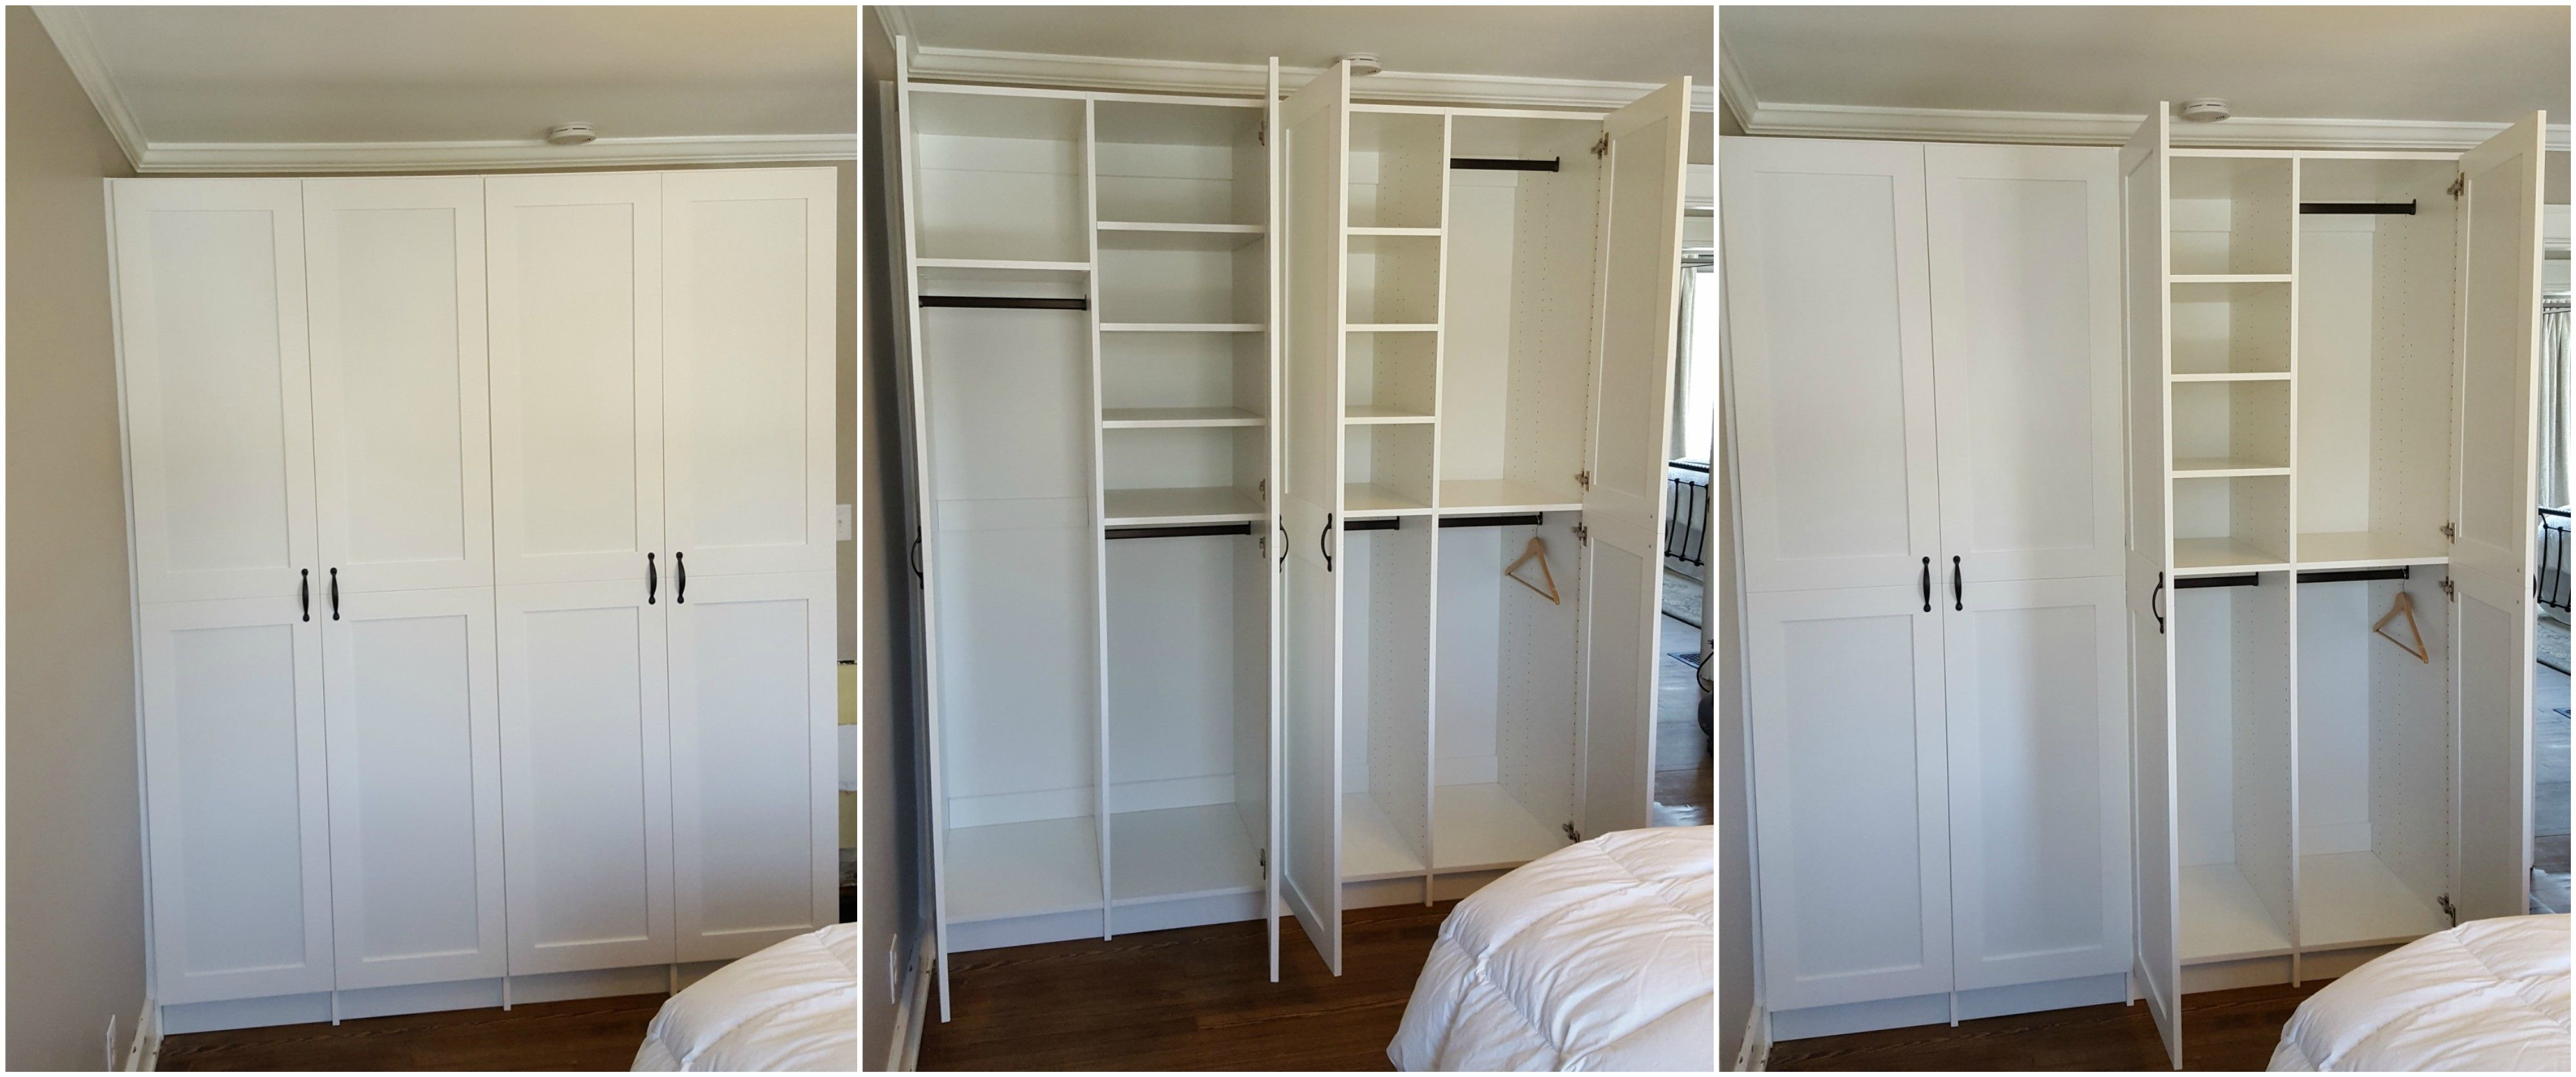 White Melamine Closet Cabinets With Long Hang Double Hang Adjustable Shelving And Doors Closet Cabinets Locker Storage Adjustable Shelving